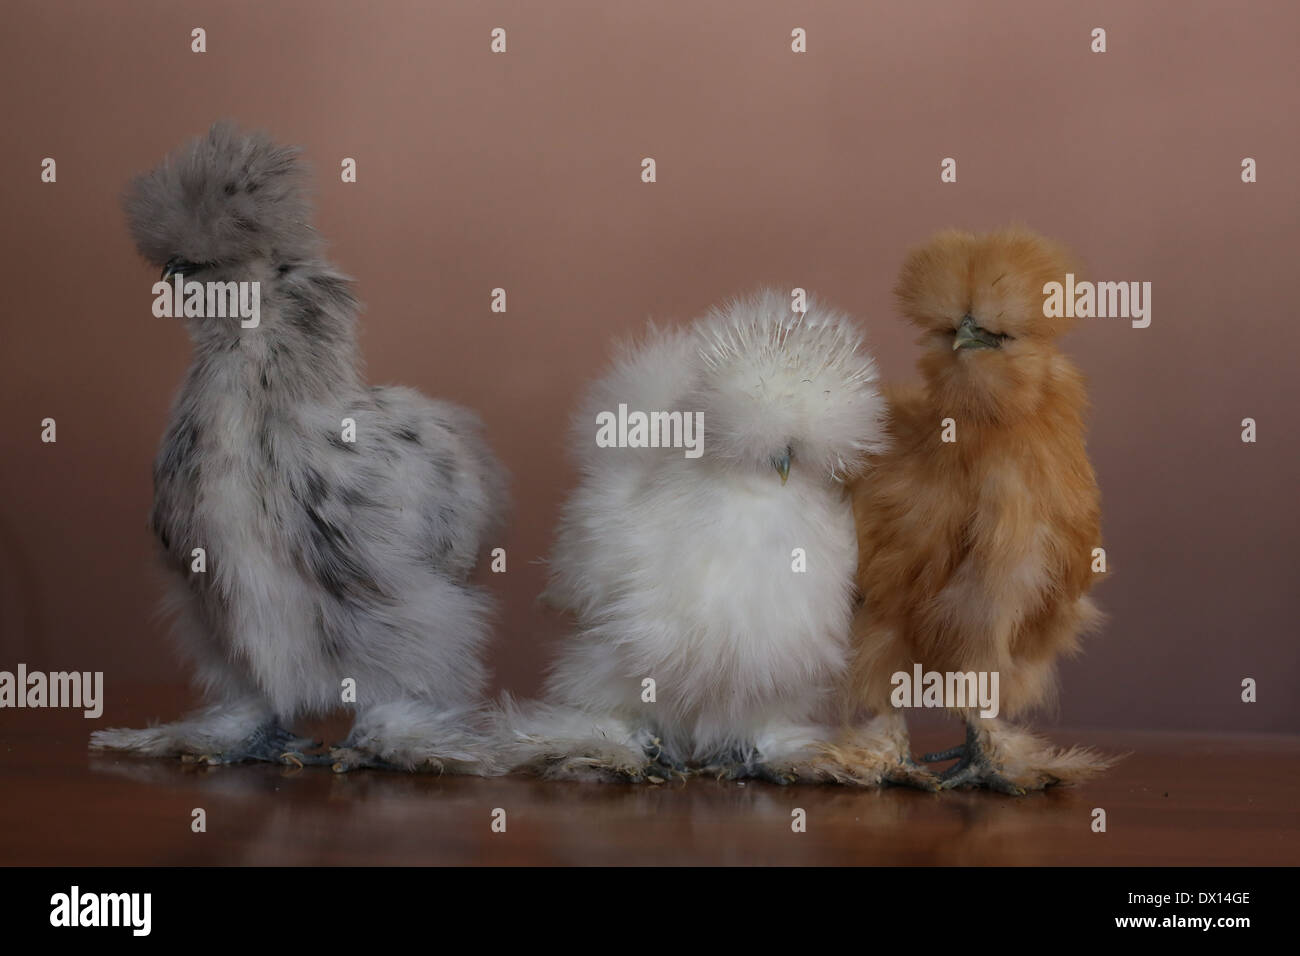 3 Silkie chickens, side by side. - Stock Image